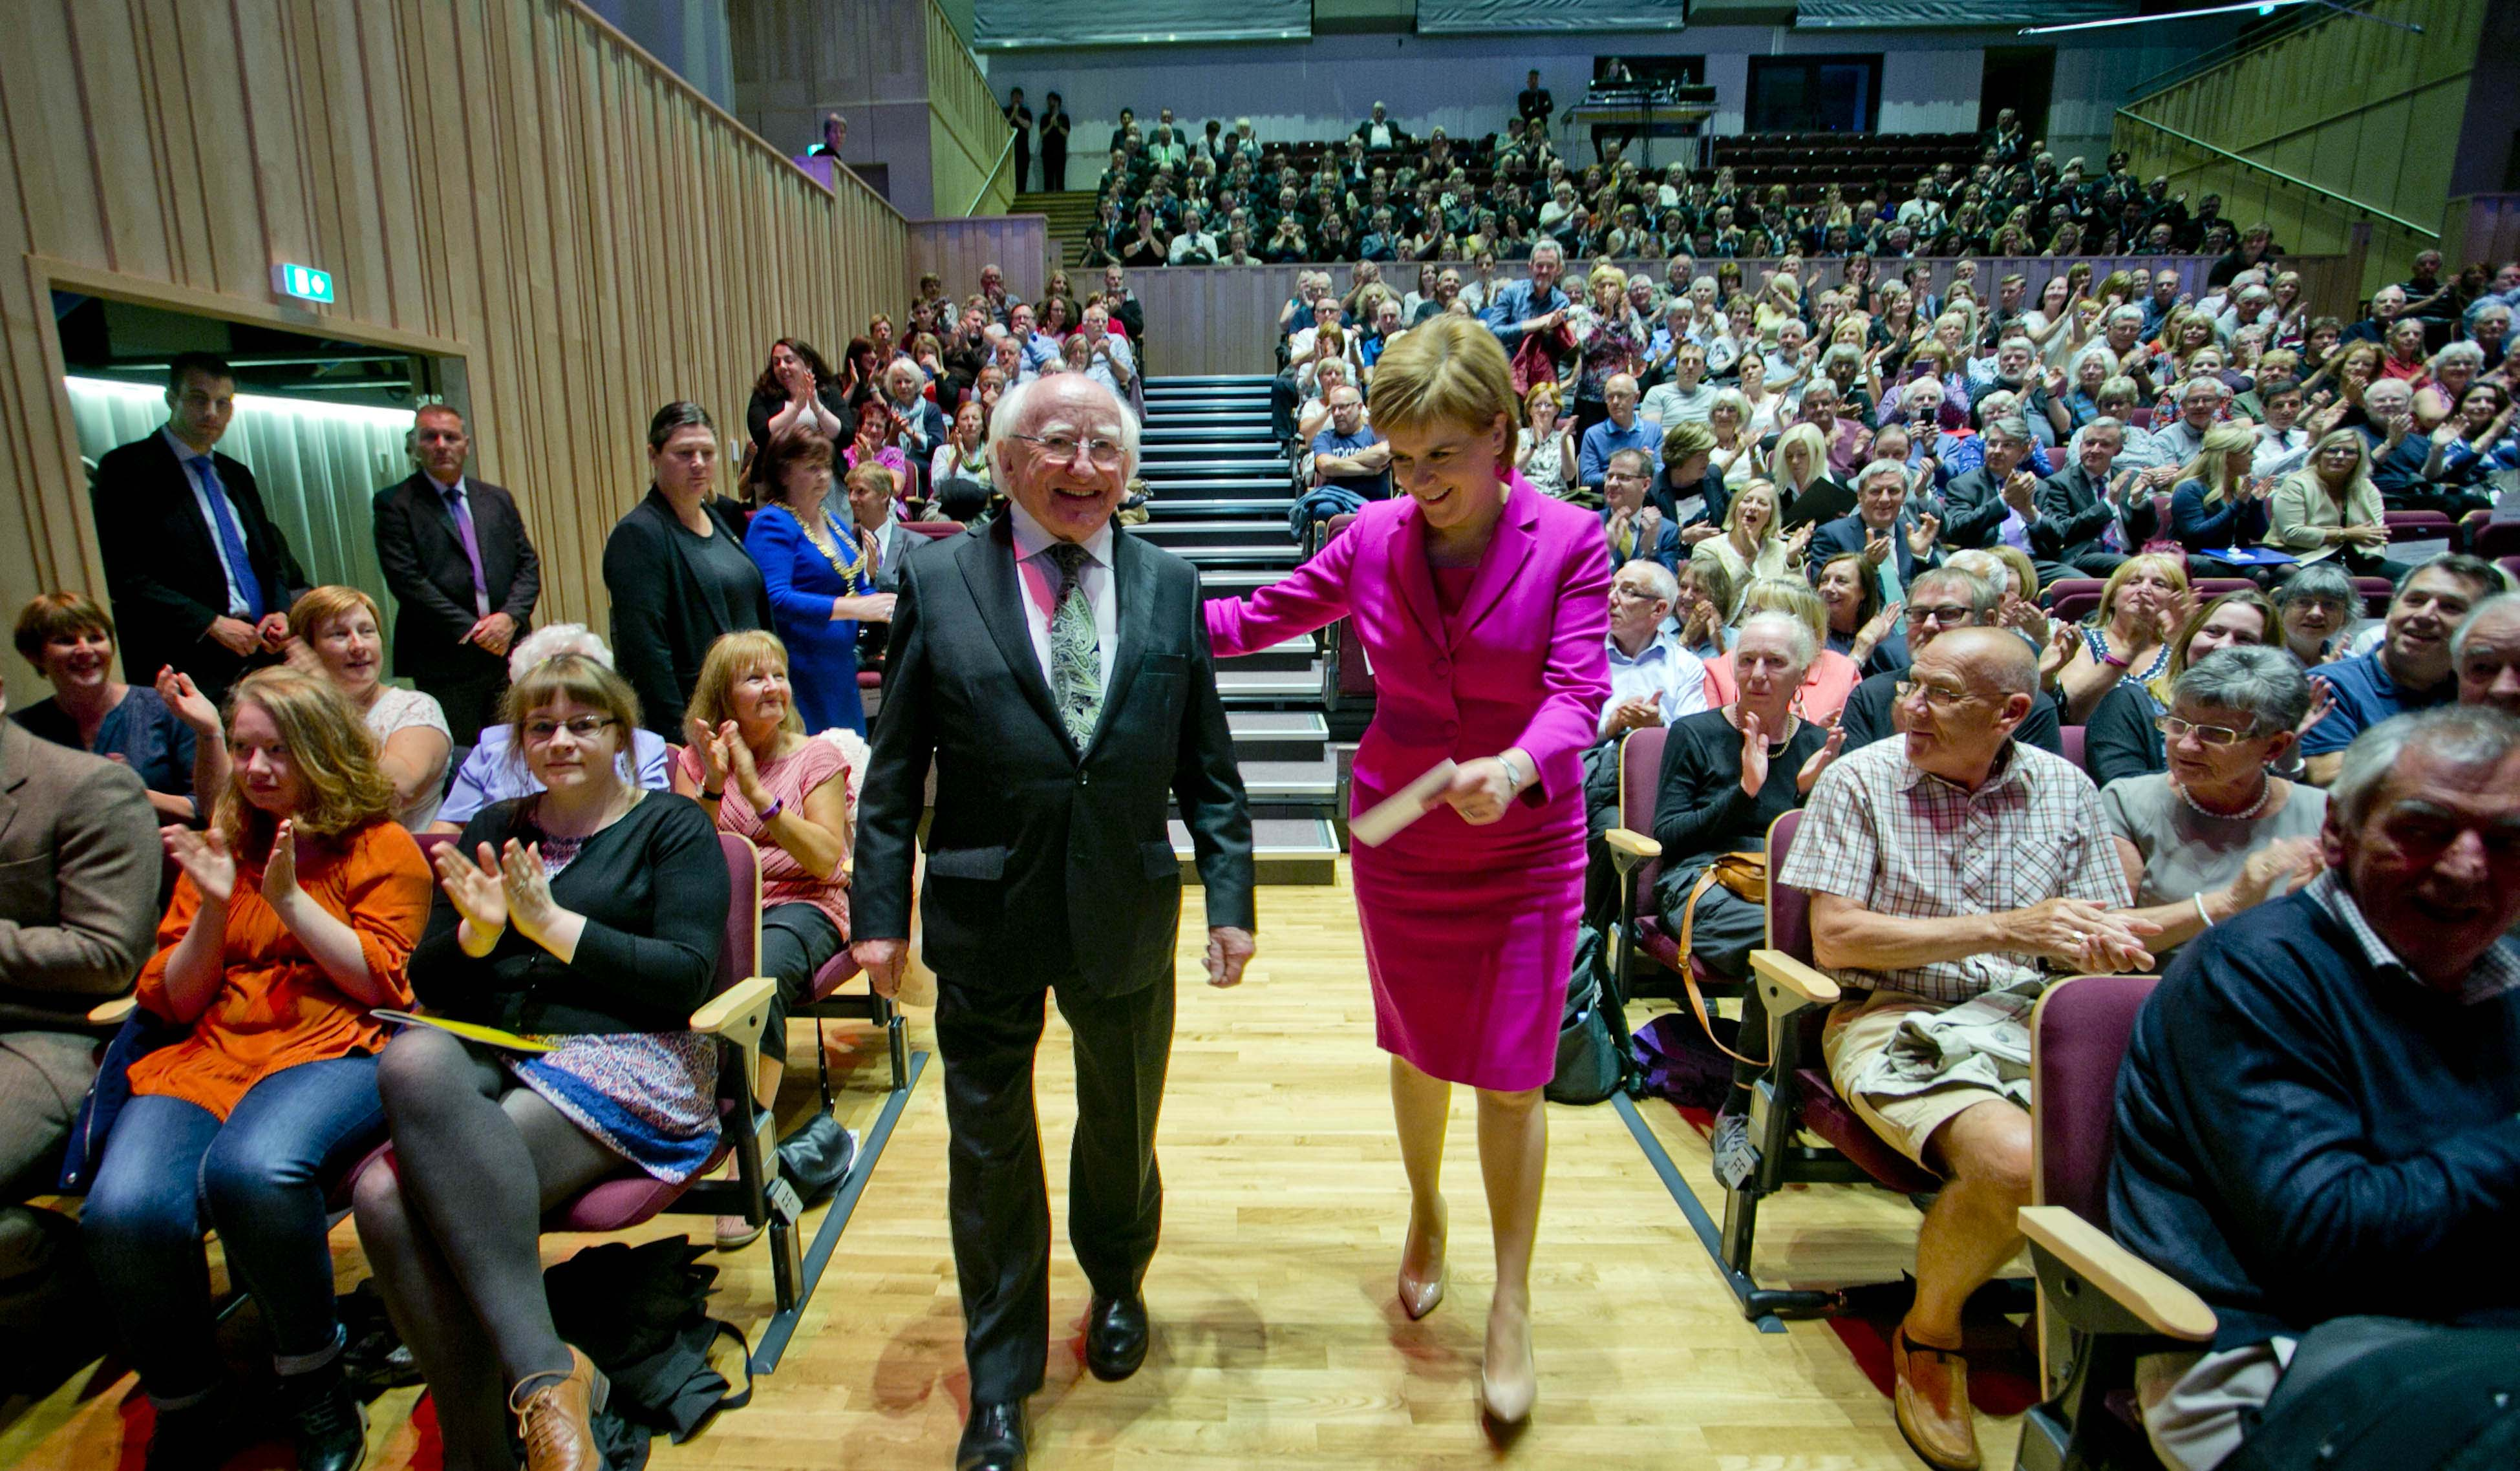 News 27062016. Pictured is President Michael D Higgins with Ms. Nicola Sturgeon, First Minister of Scotland being welcomed at the Ceangal Cultural Performance in the Glasgow Royal Concert Hall, on the 1st day of the Presidents 4 day visit to Scotland. Photo Chris Bellew / Copyright Fennell Photography 2016